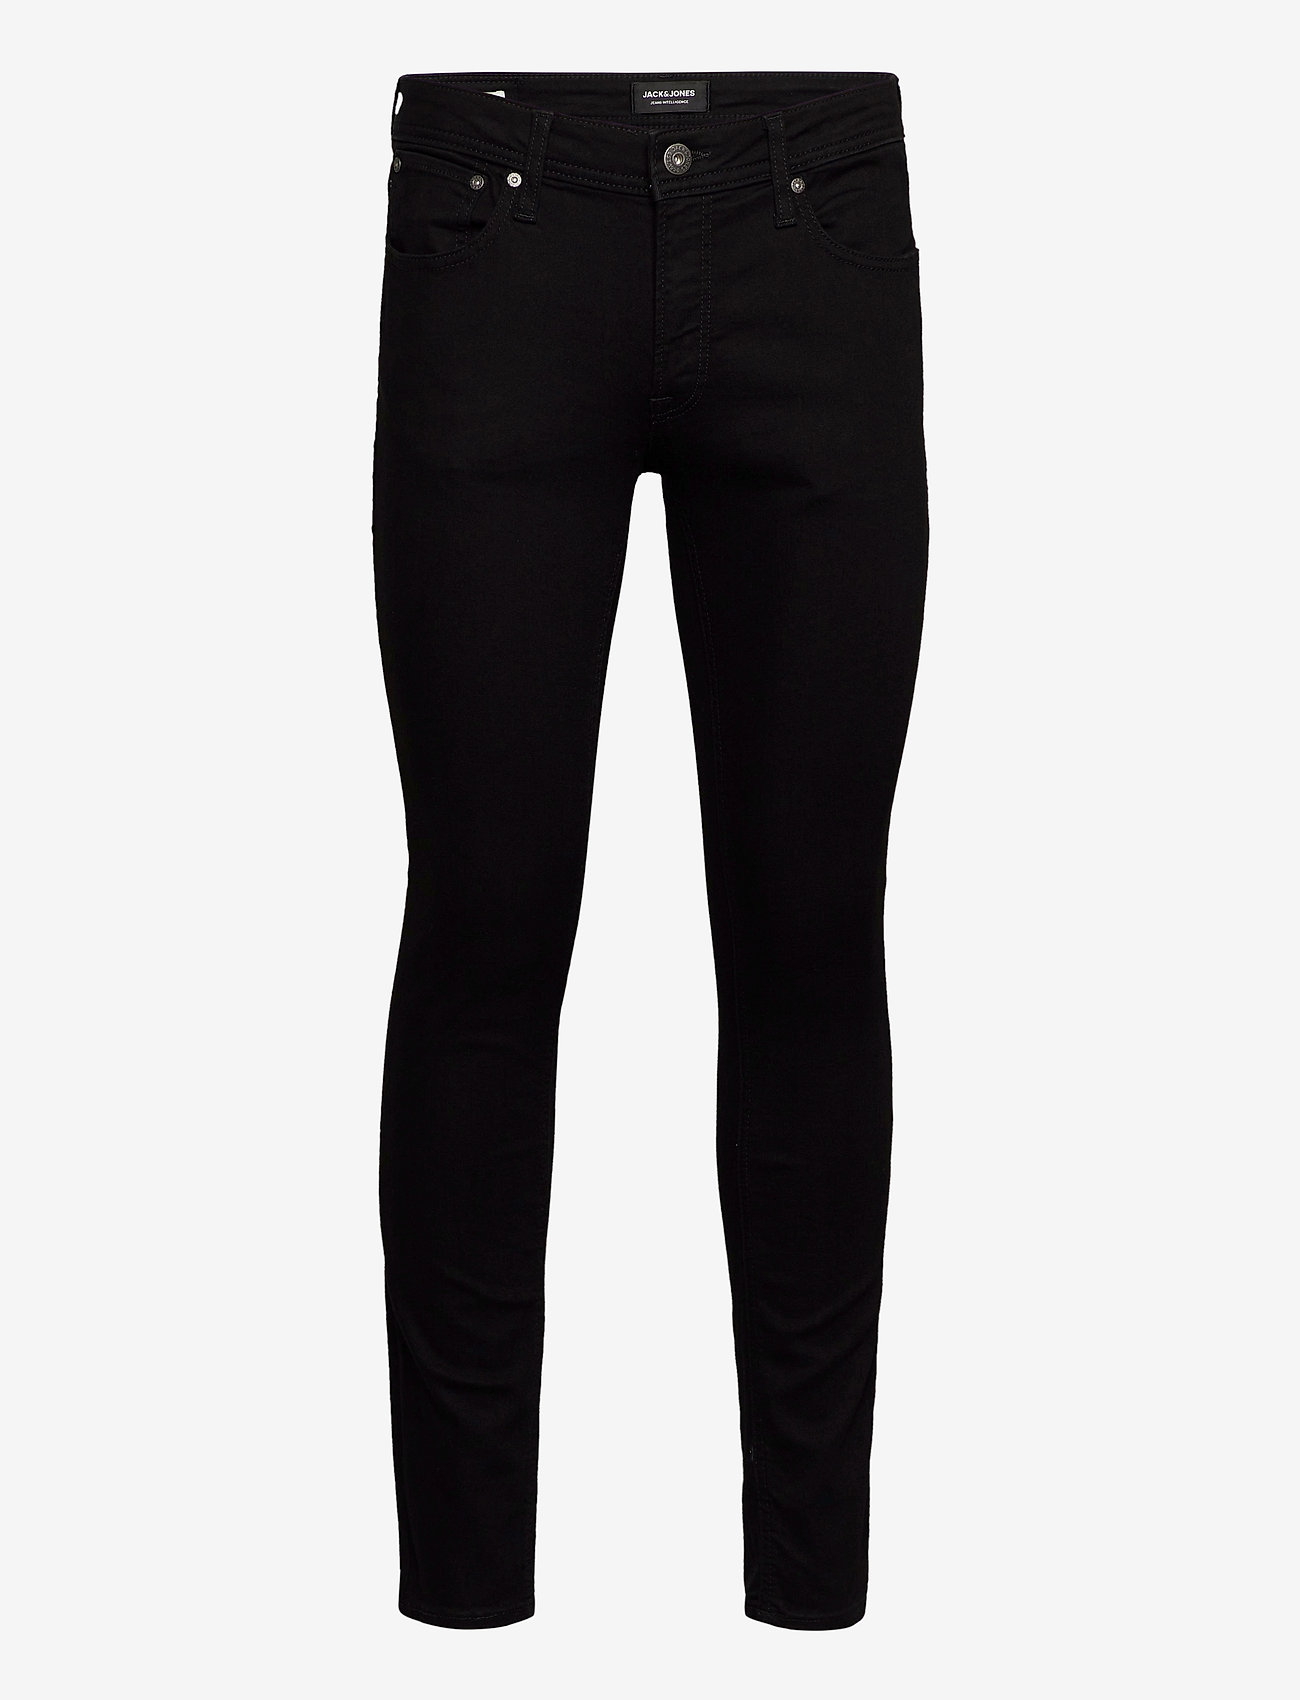 Jack & Jones - JJILIAM JJORIGINAL AM 816 NOOS - slim jeans - black denim - 0